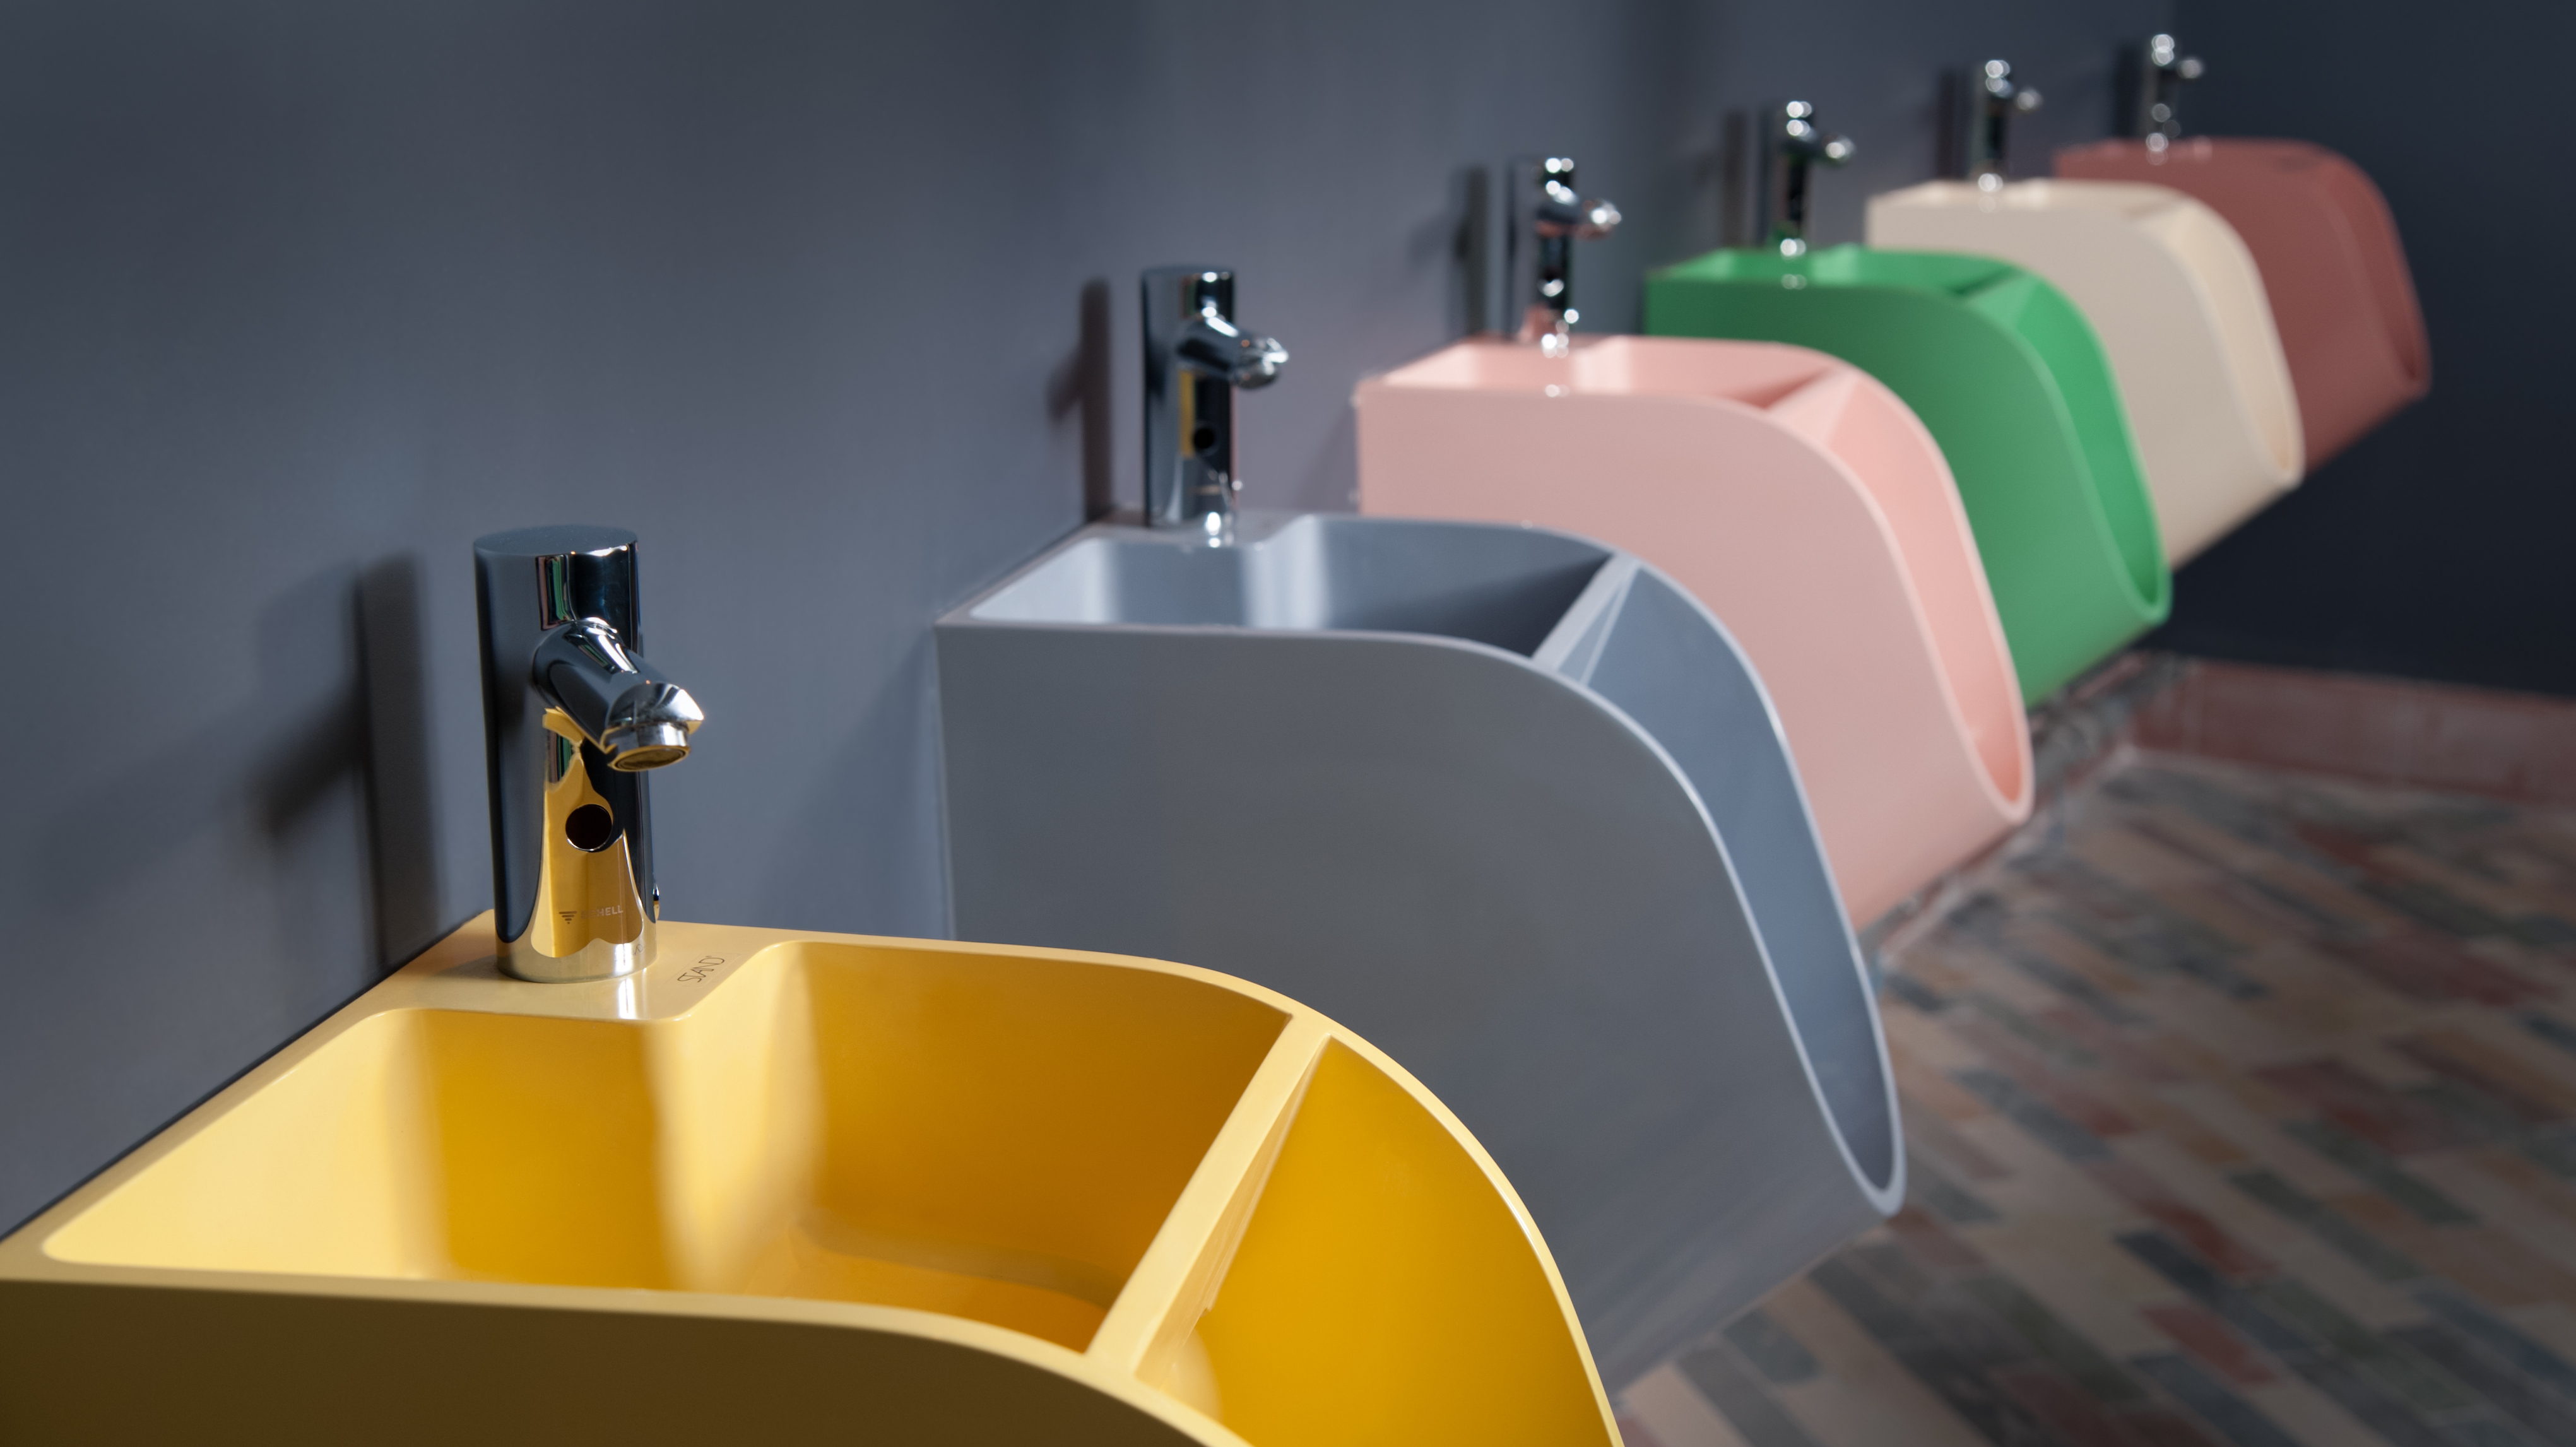 The 'Sink-Urinal' Saves Water, Encourages Men To Wash Hands